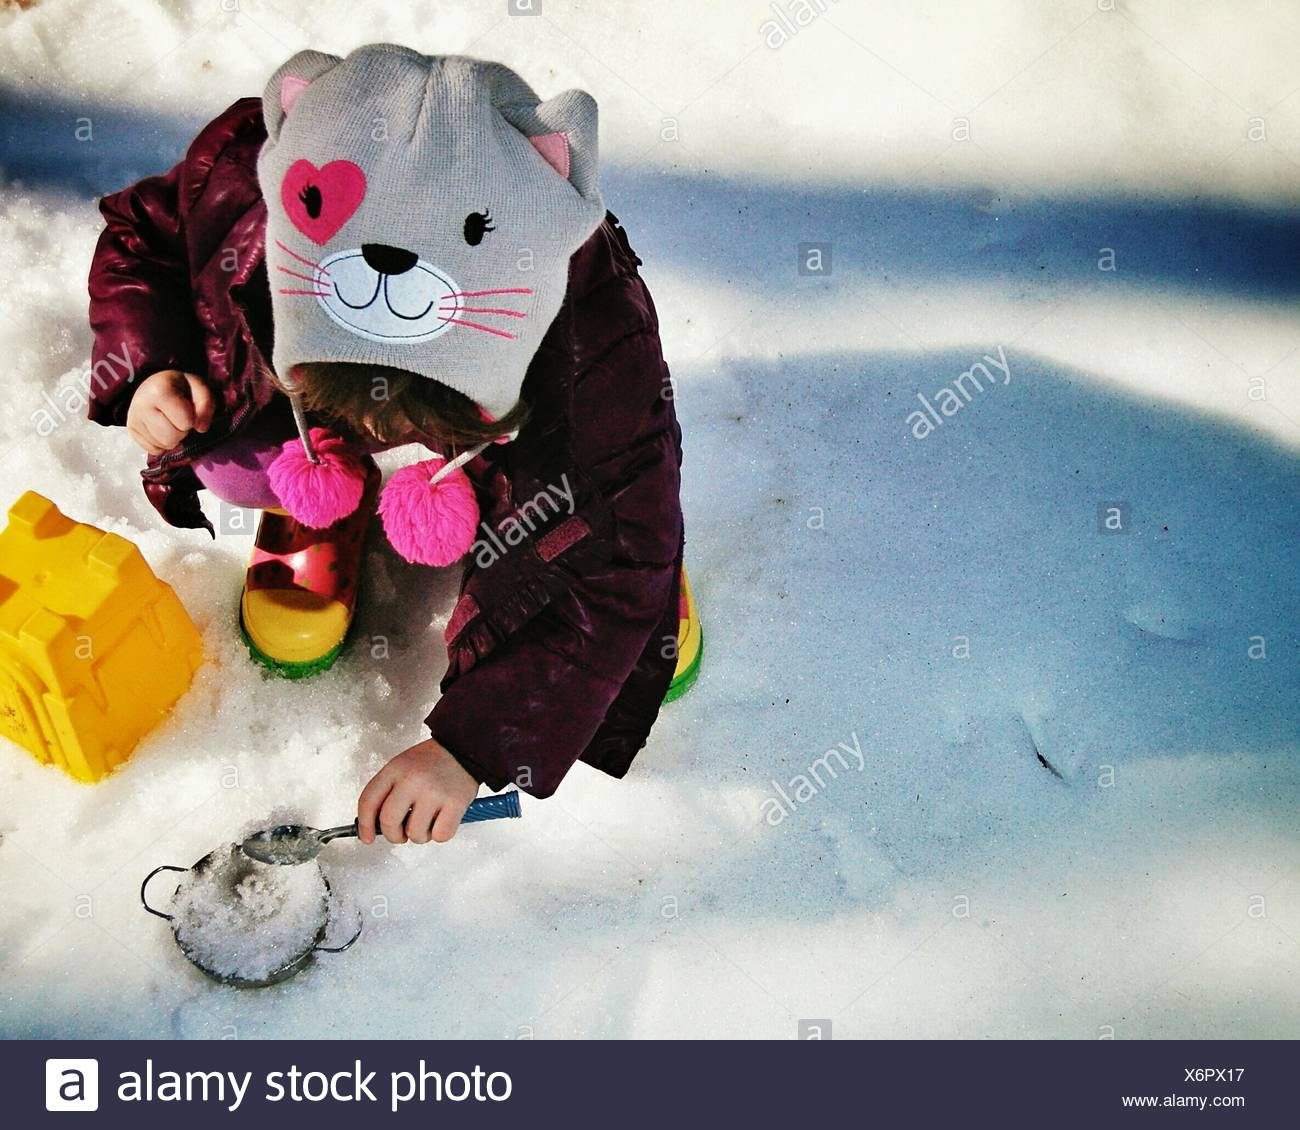 High Angle View of Little Girl Playing in snow Photo Stock